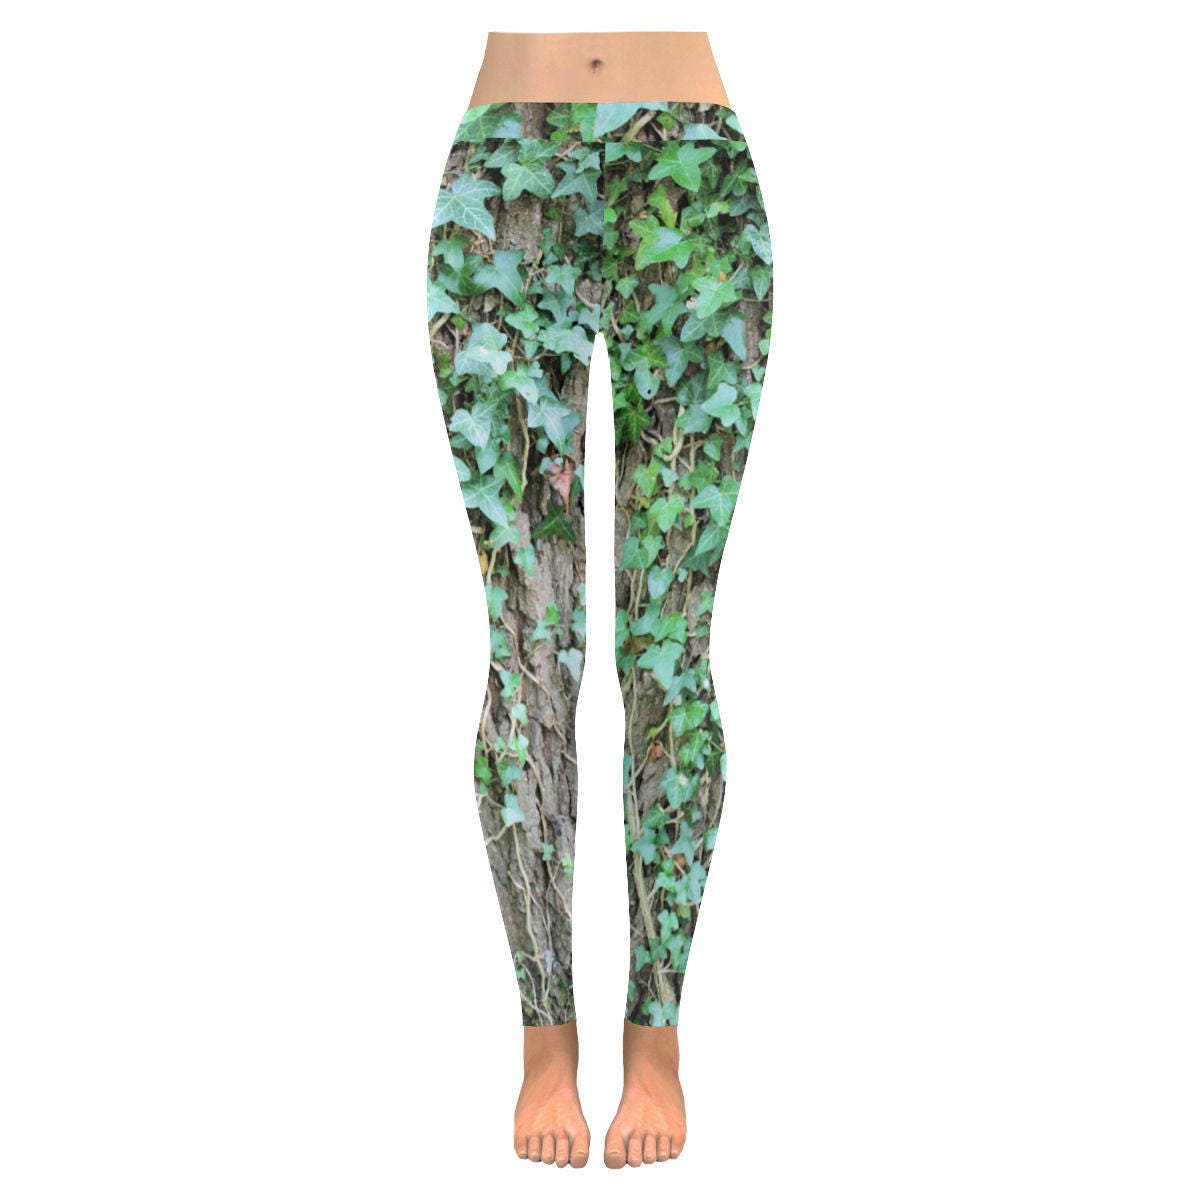 Ivy leggings oak tree nature photo leaves size xs s m l xl 2xl 3xl alternative clothing unique printed leggings green ivy unusual